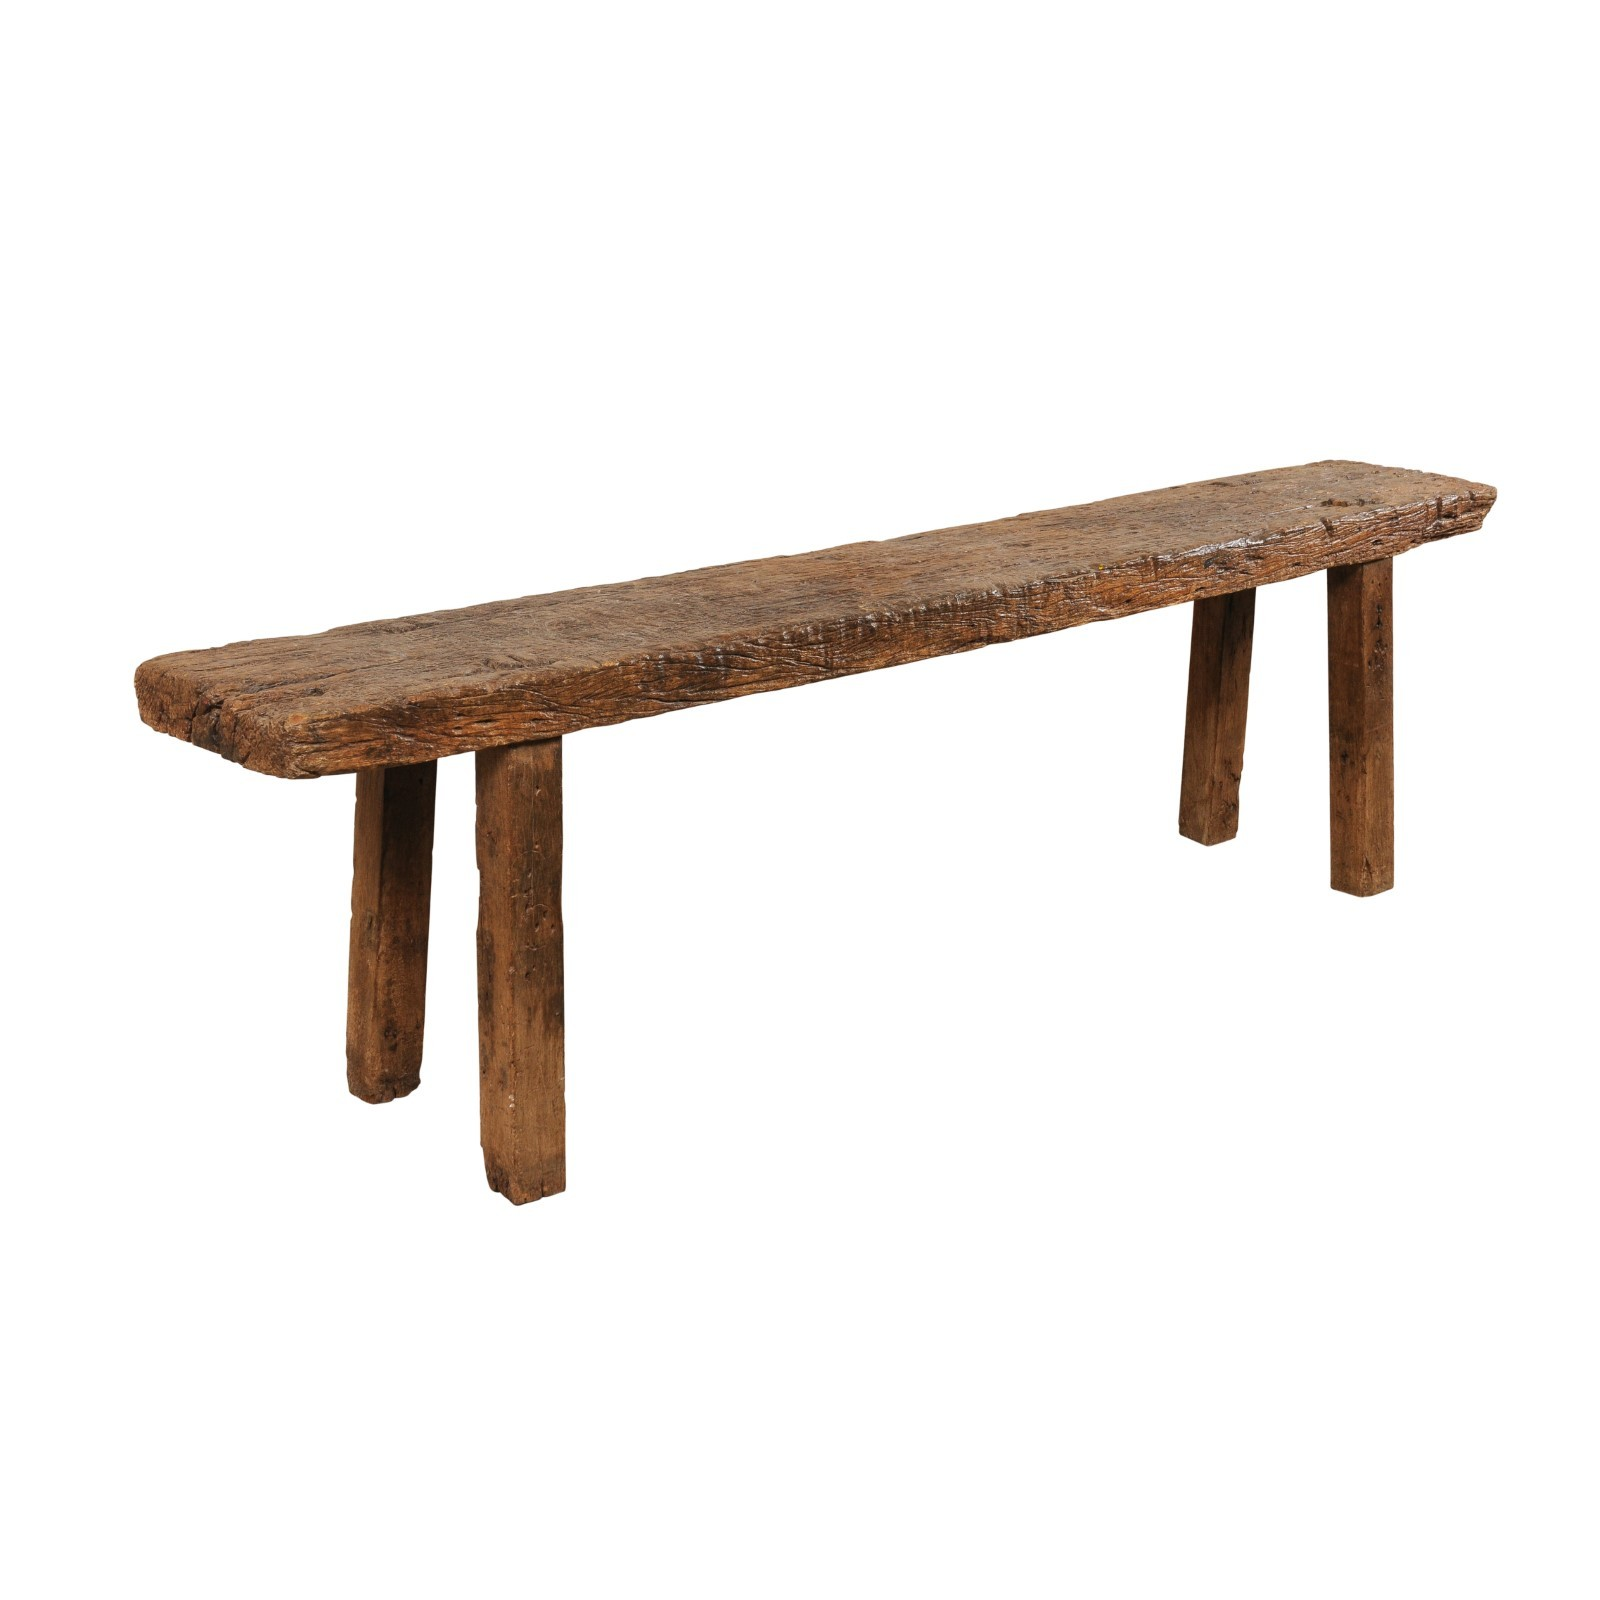 Antique Brazilian Bench-Style Table